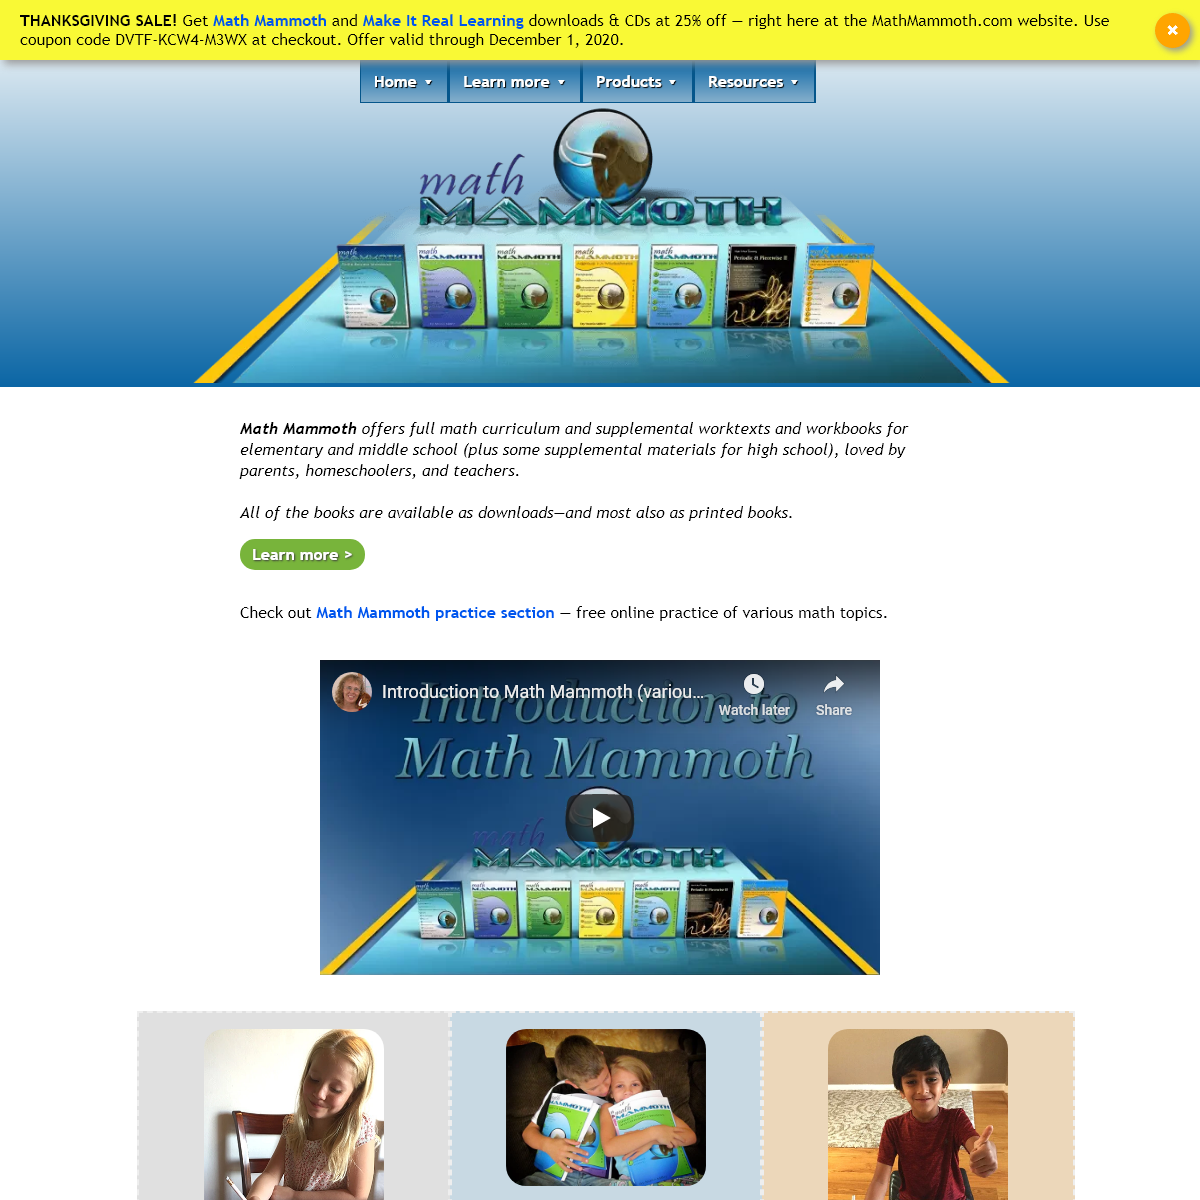 Math Mammoth - affordable, quality math worktexts and workbooks